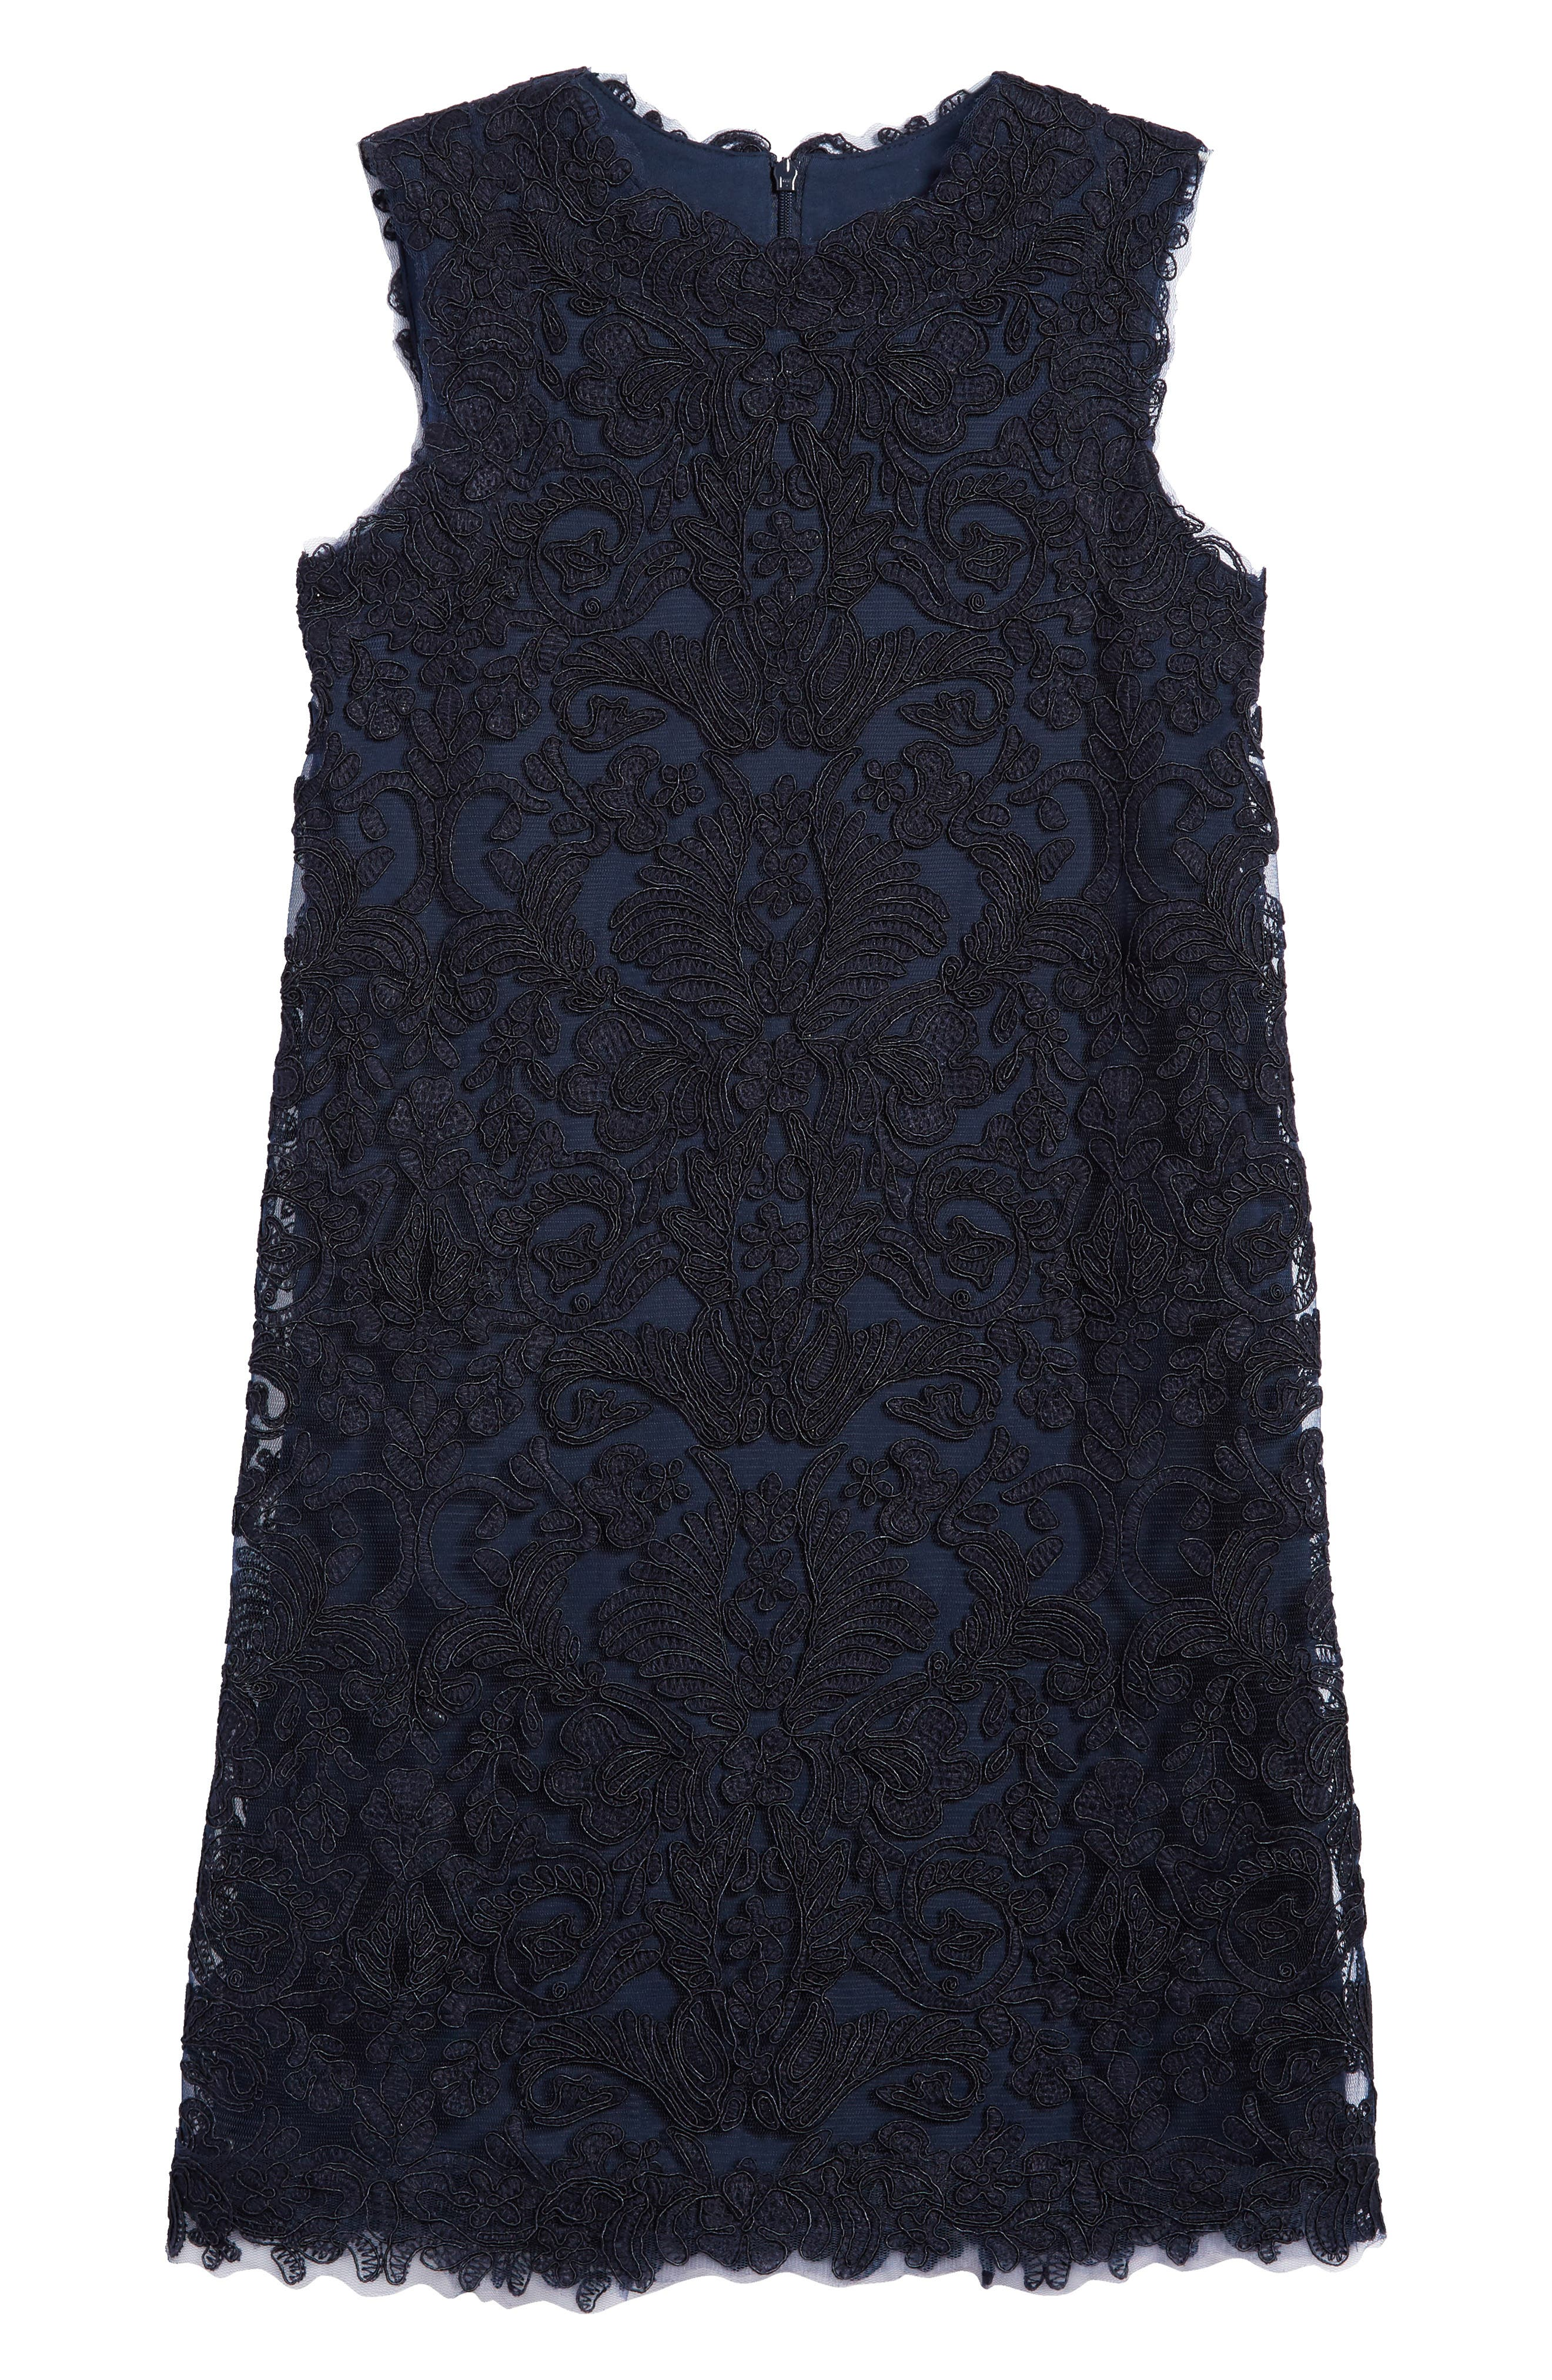 'Honeysuckle' Embroidered Tulle Dress,                         Main,                         color, Navy